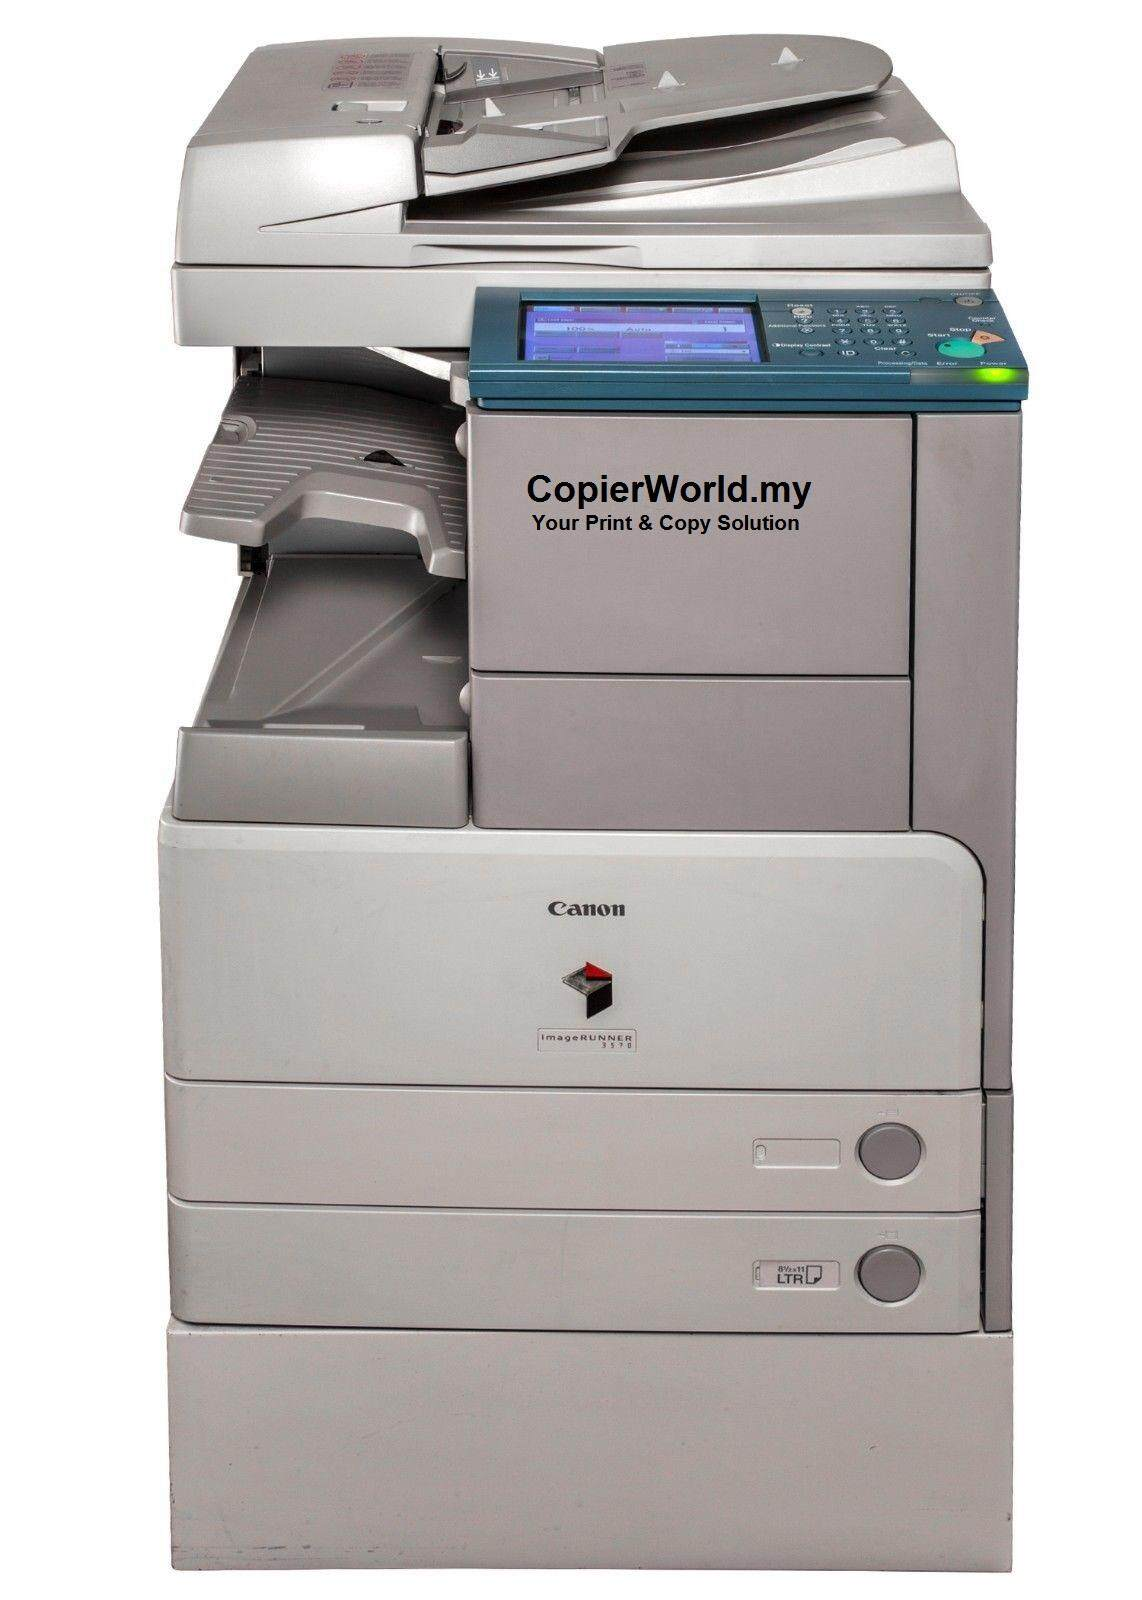 CANON IMAGERUNNER 3245 DRIVERS FOR PC